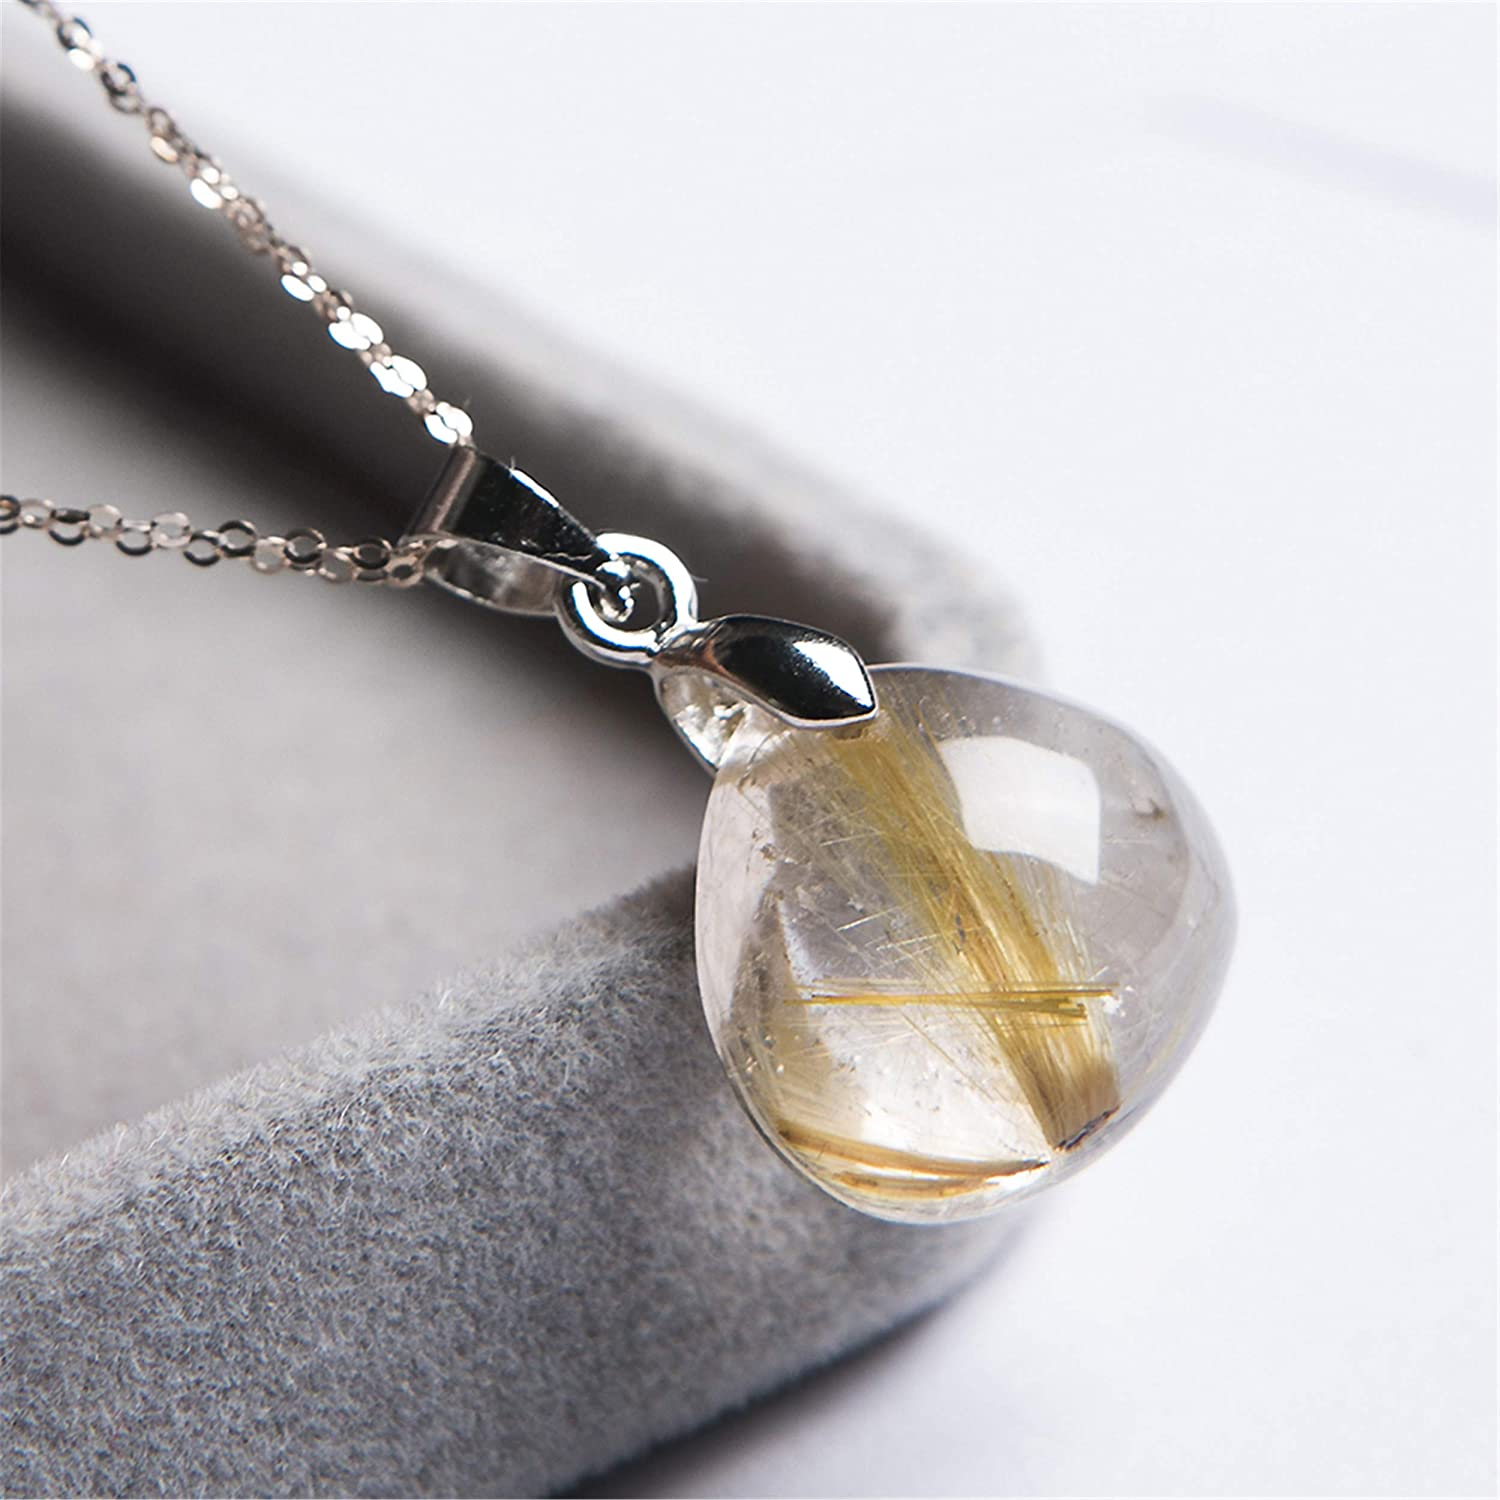 Genuine Jewelry Pendant Natural Gold Titanium Rutilated Quartz Crystal Gemstone Bead Necklace For Women